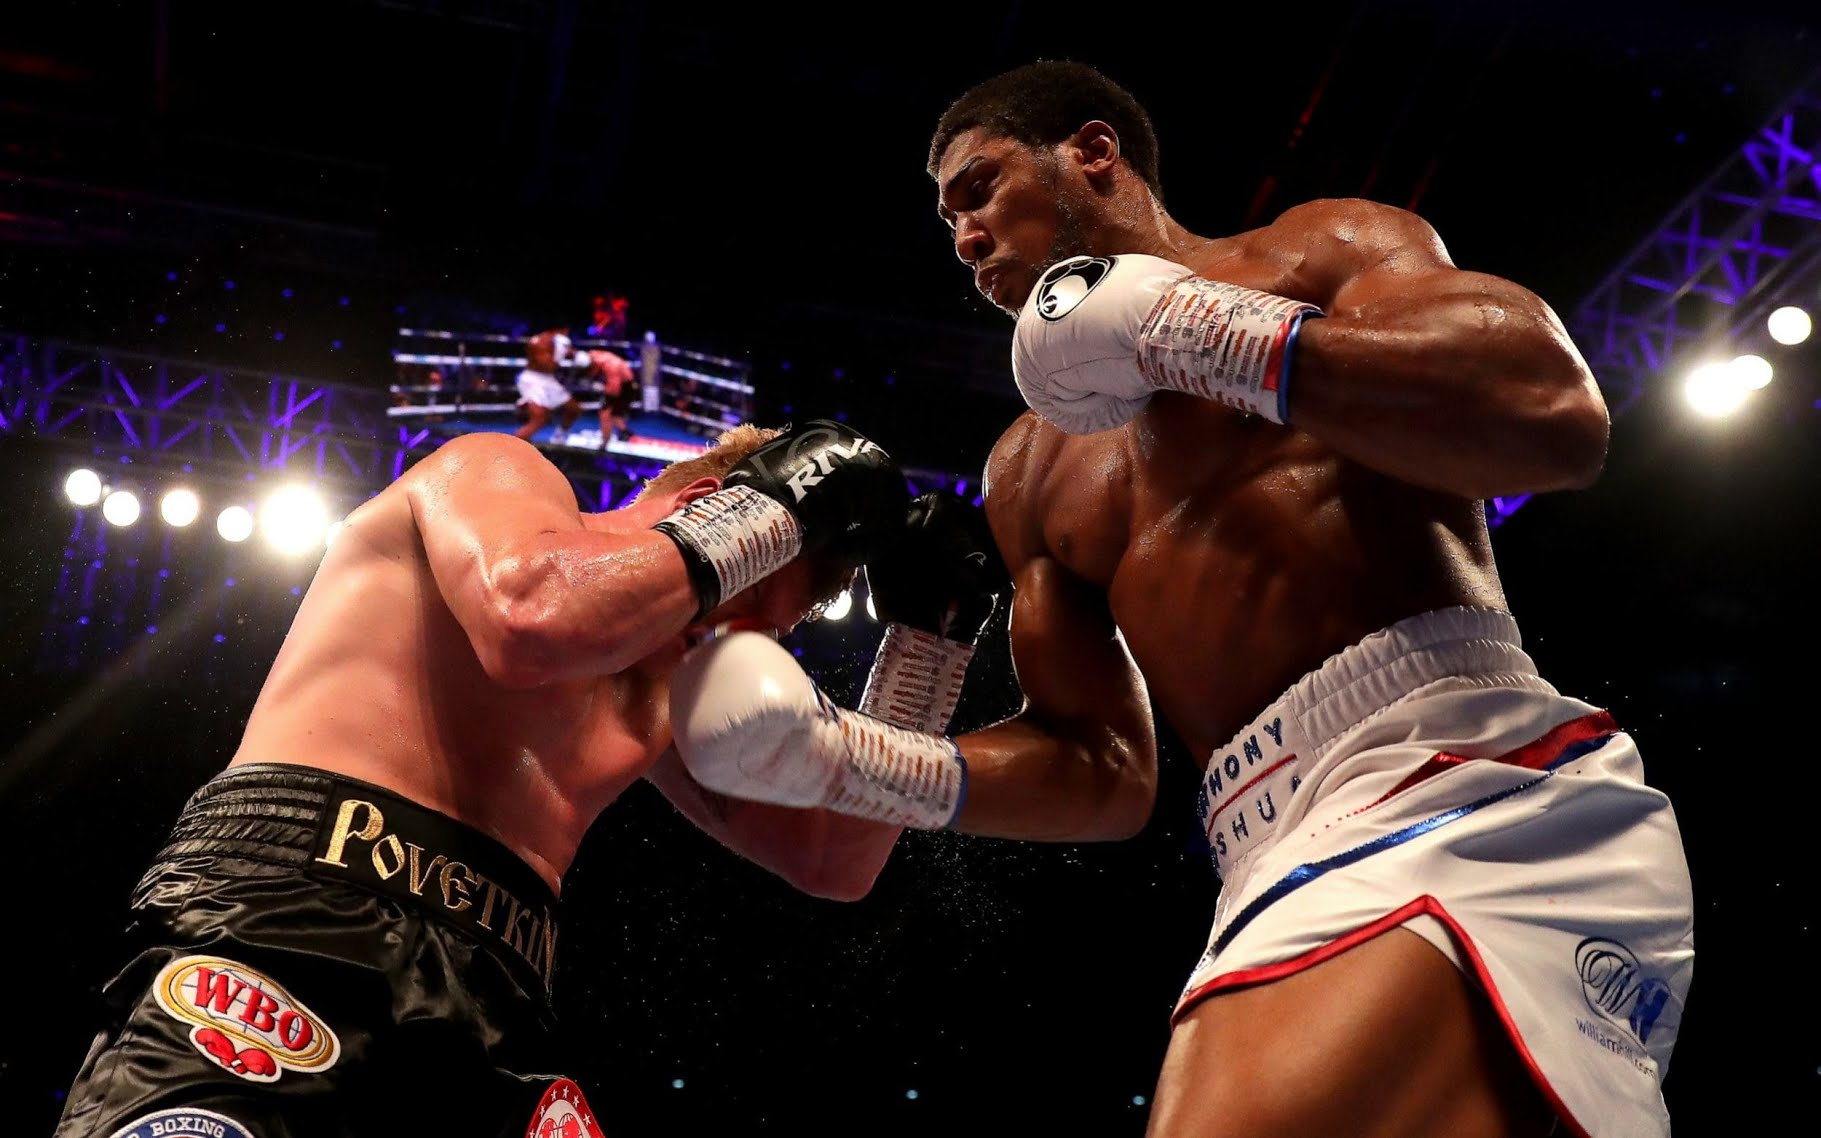 Nigerian boxer, Anthony Joshua beats Russian, Alexandre Povetkin to maintain his 22 out of 22 victories